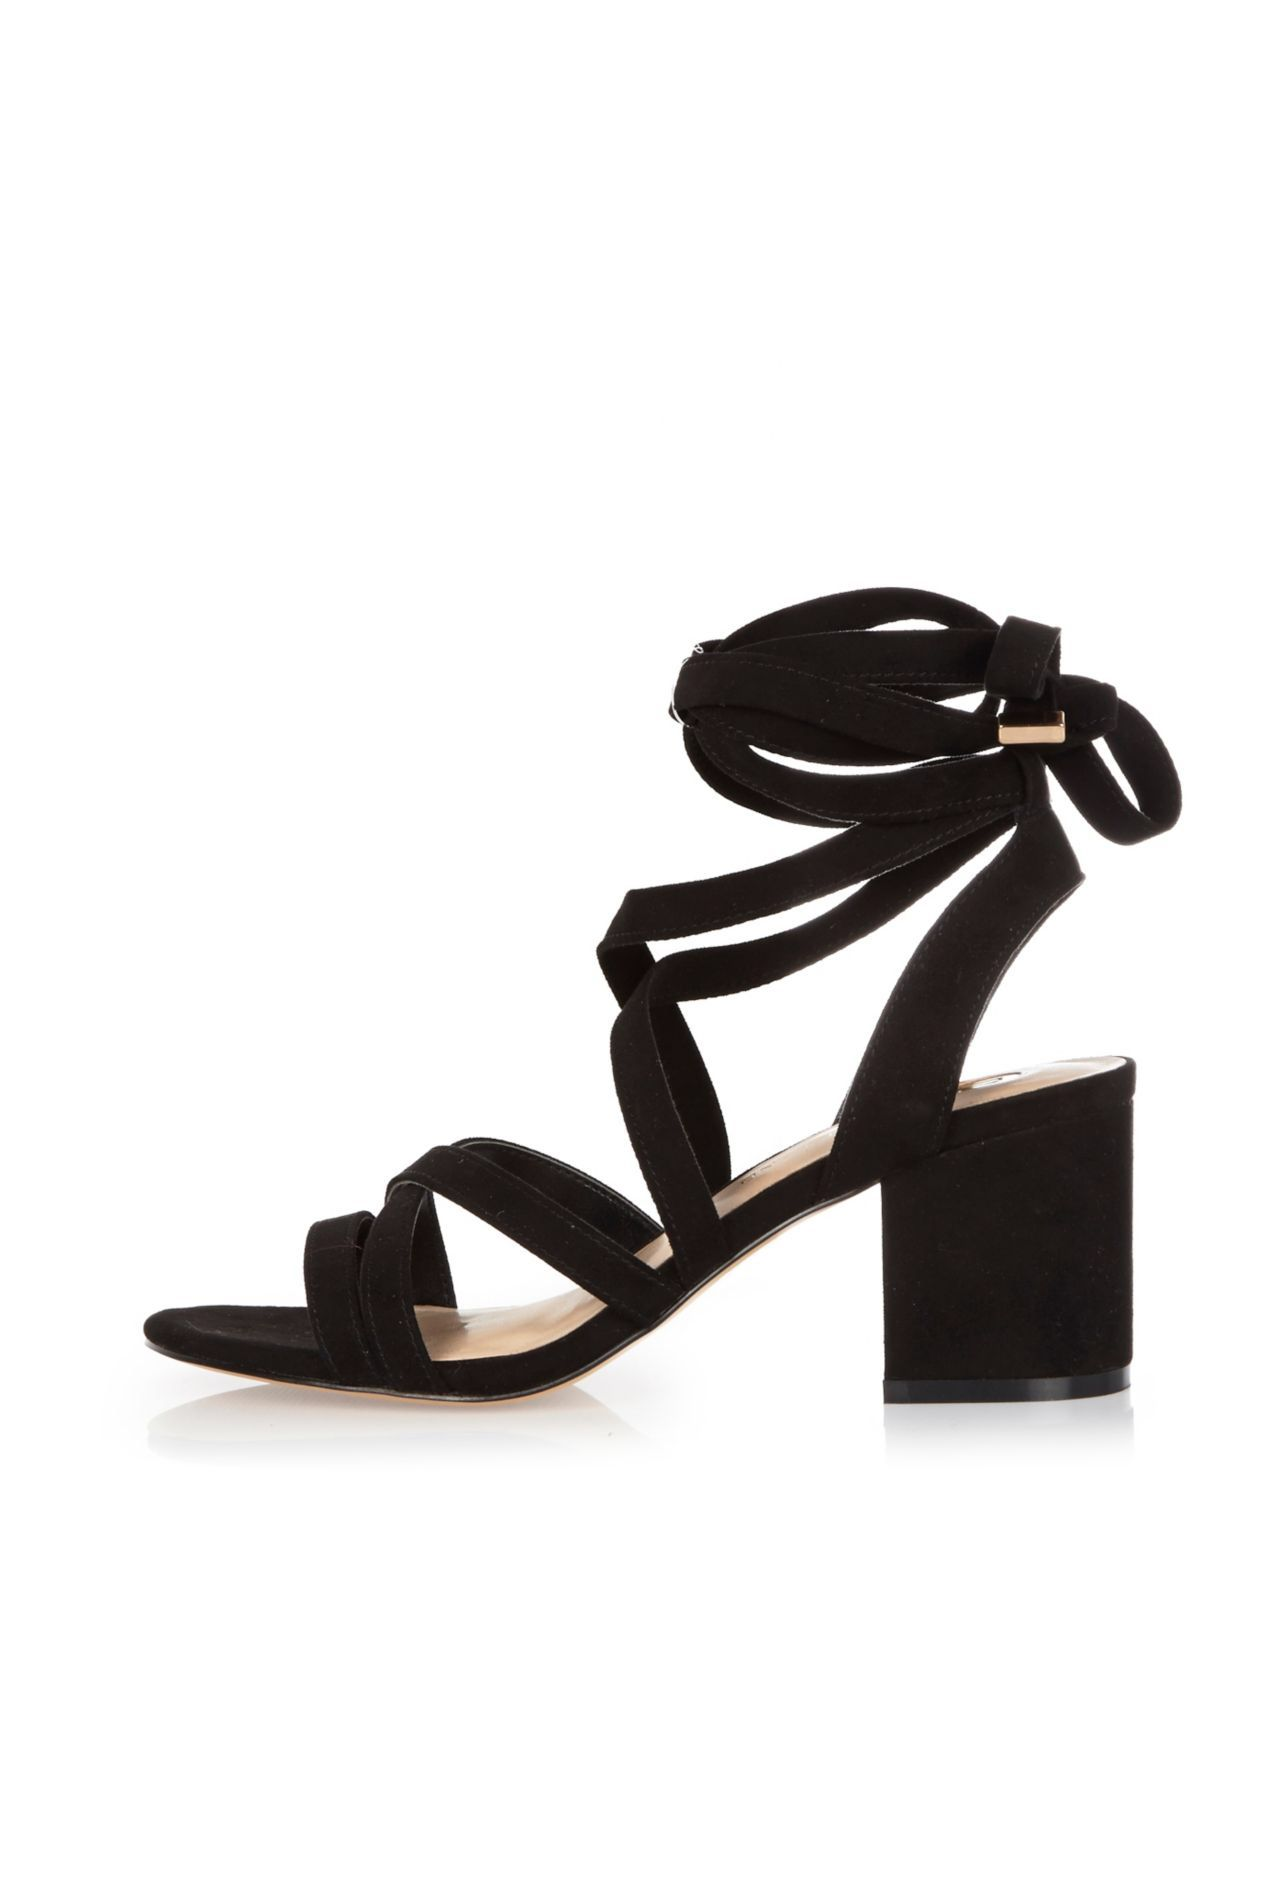 62831f2fe2 Checkout this Black soft tie heel sandals from River Island | Shoes ...